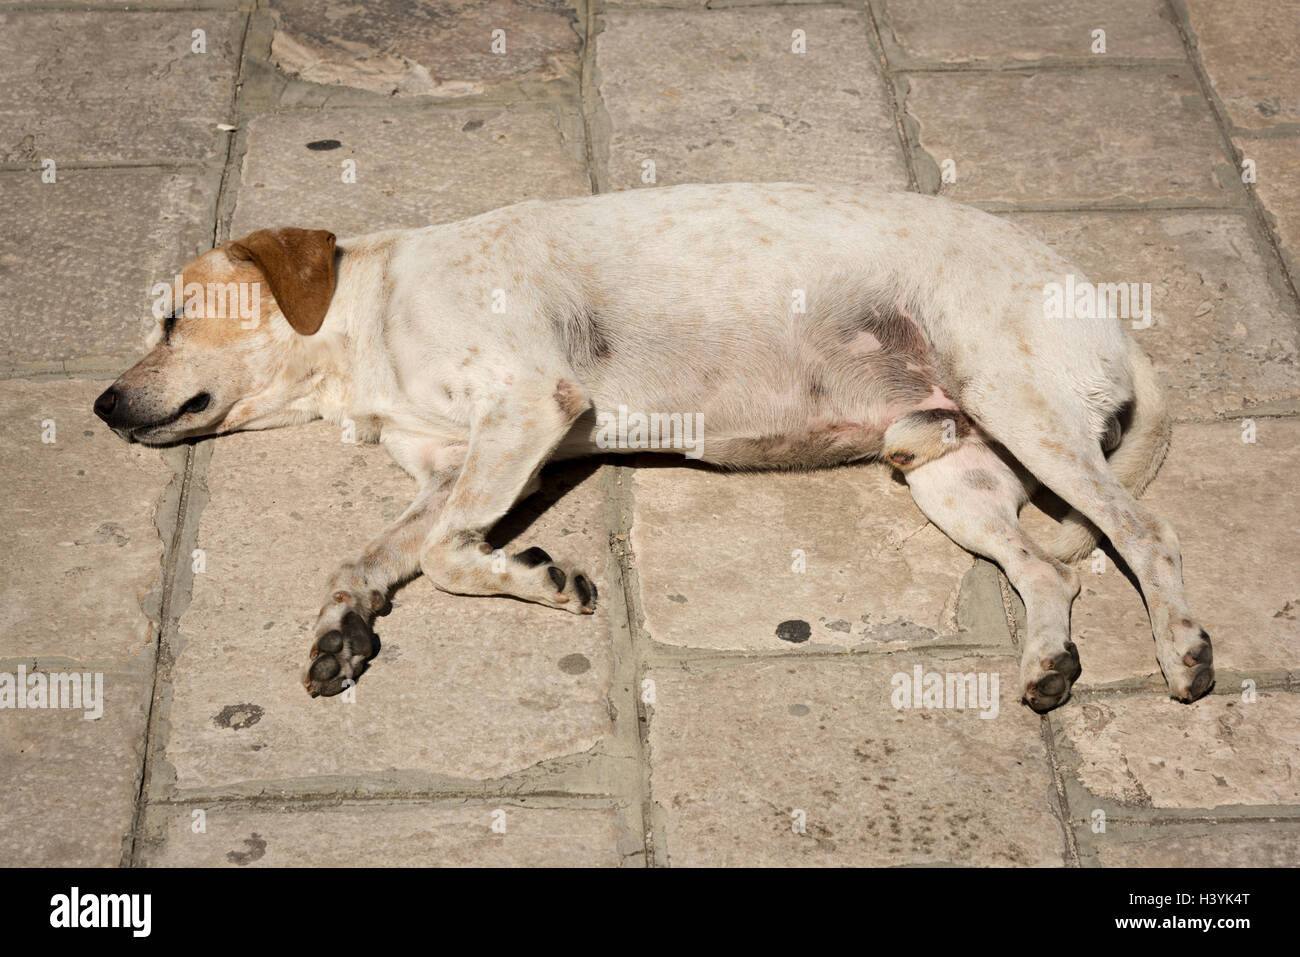 A mongrel dog sleeping in the hot sun on a stone path in the summer.  Let sleeping dogs lie. - Stock Image